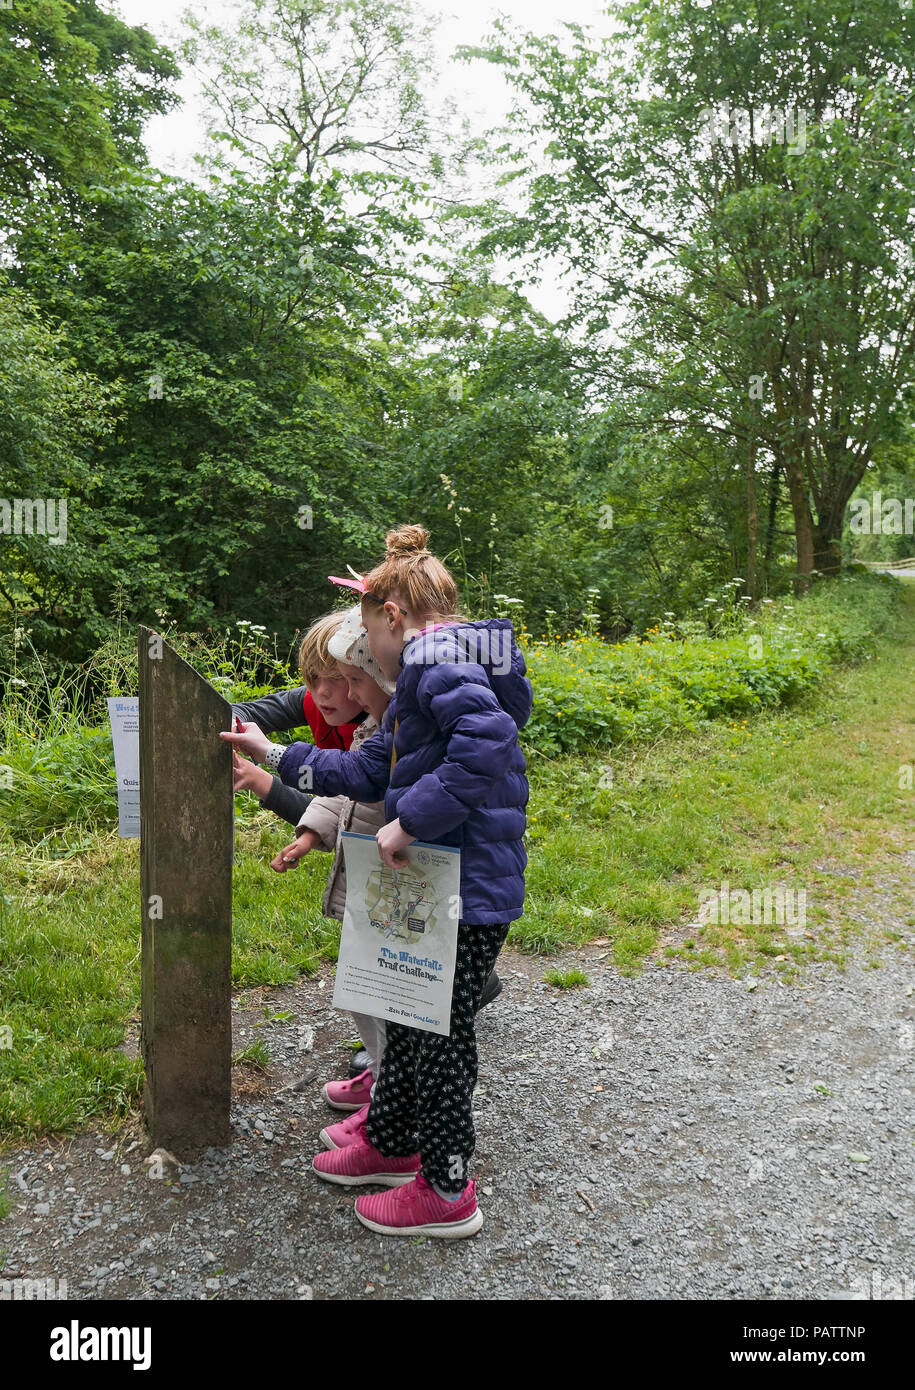 Children take part in the activity trail challenge at Ingleton Waterfalls challenge at Ingleton, Carnforth, Lancashire. - Stock Image